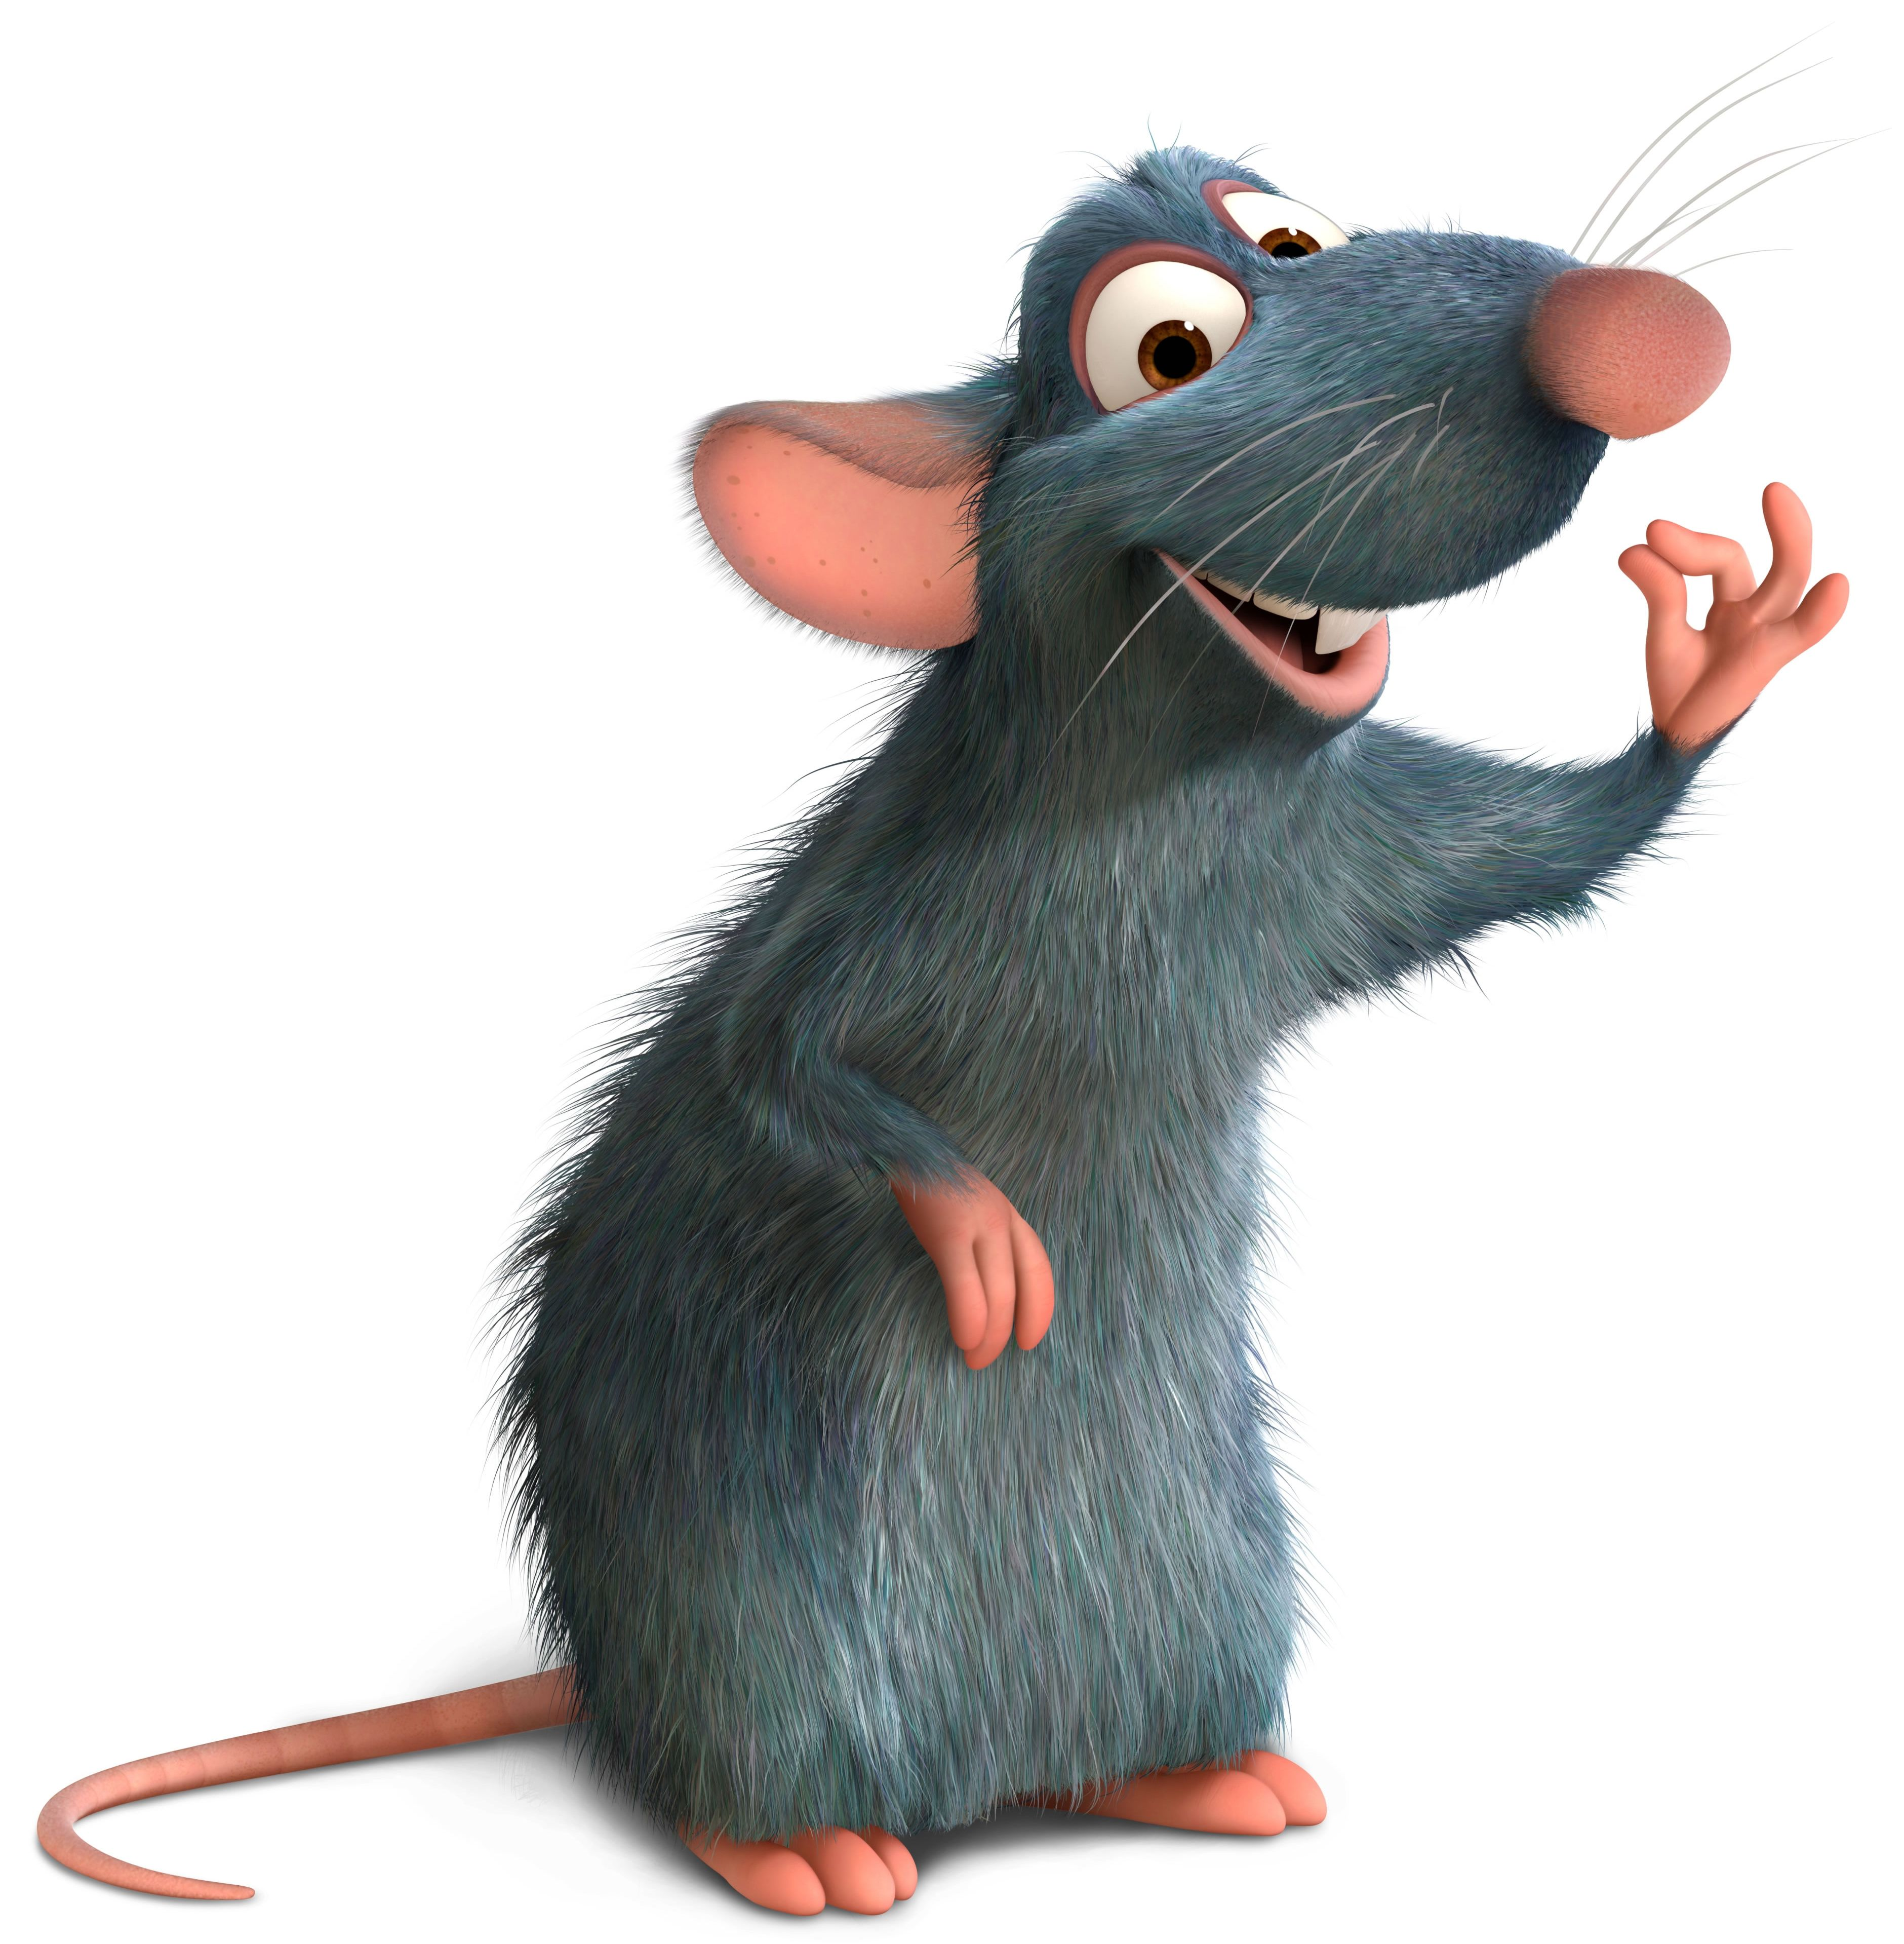 Ratatouille The Cooking Rat Pixar